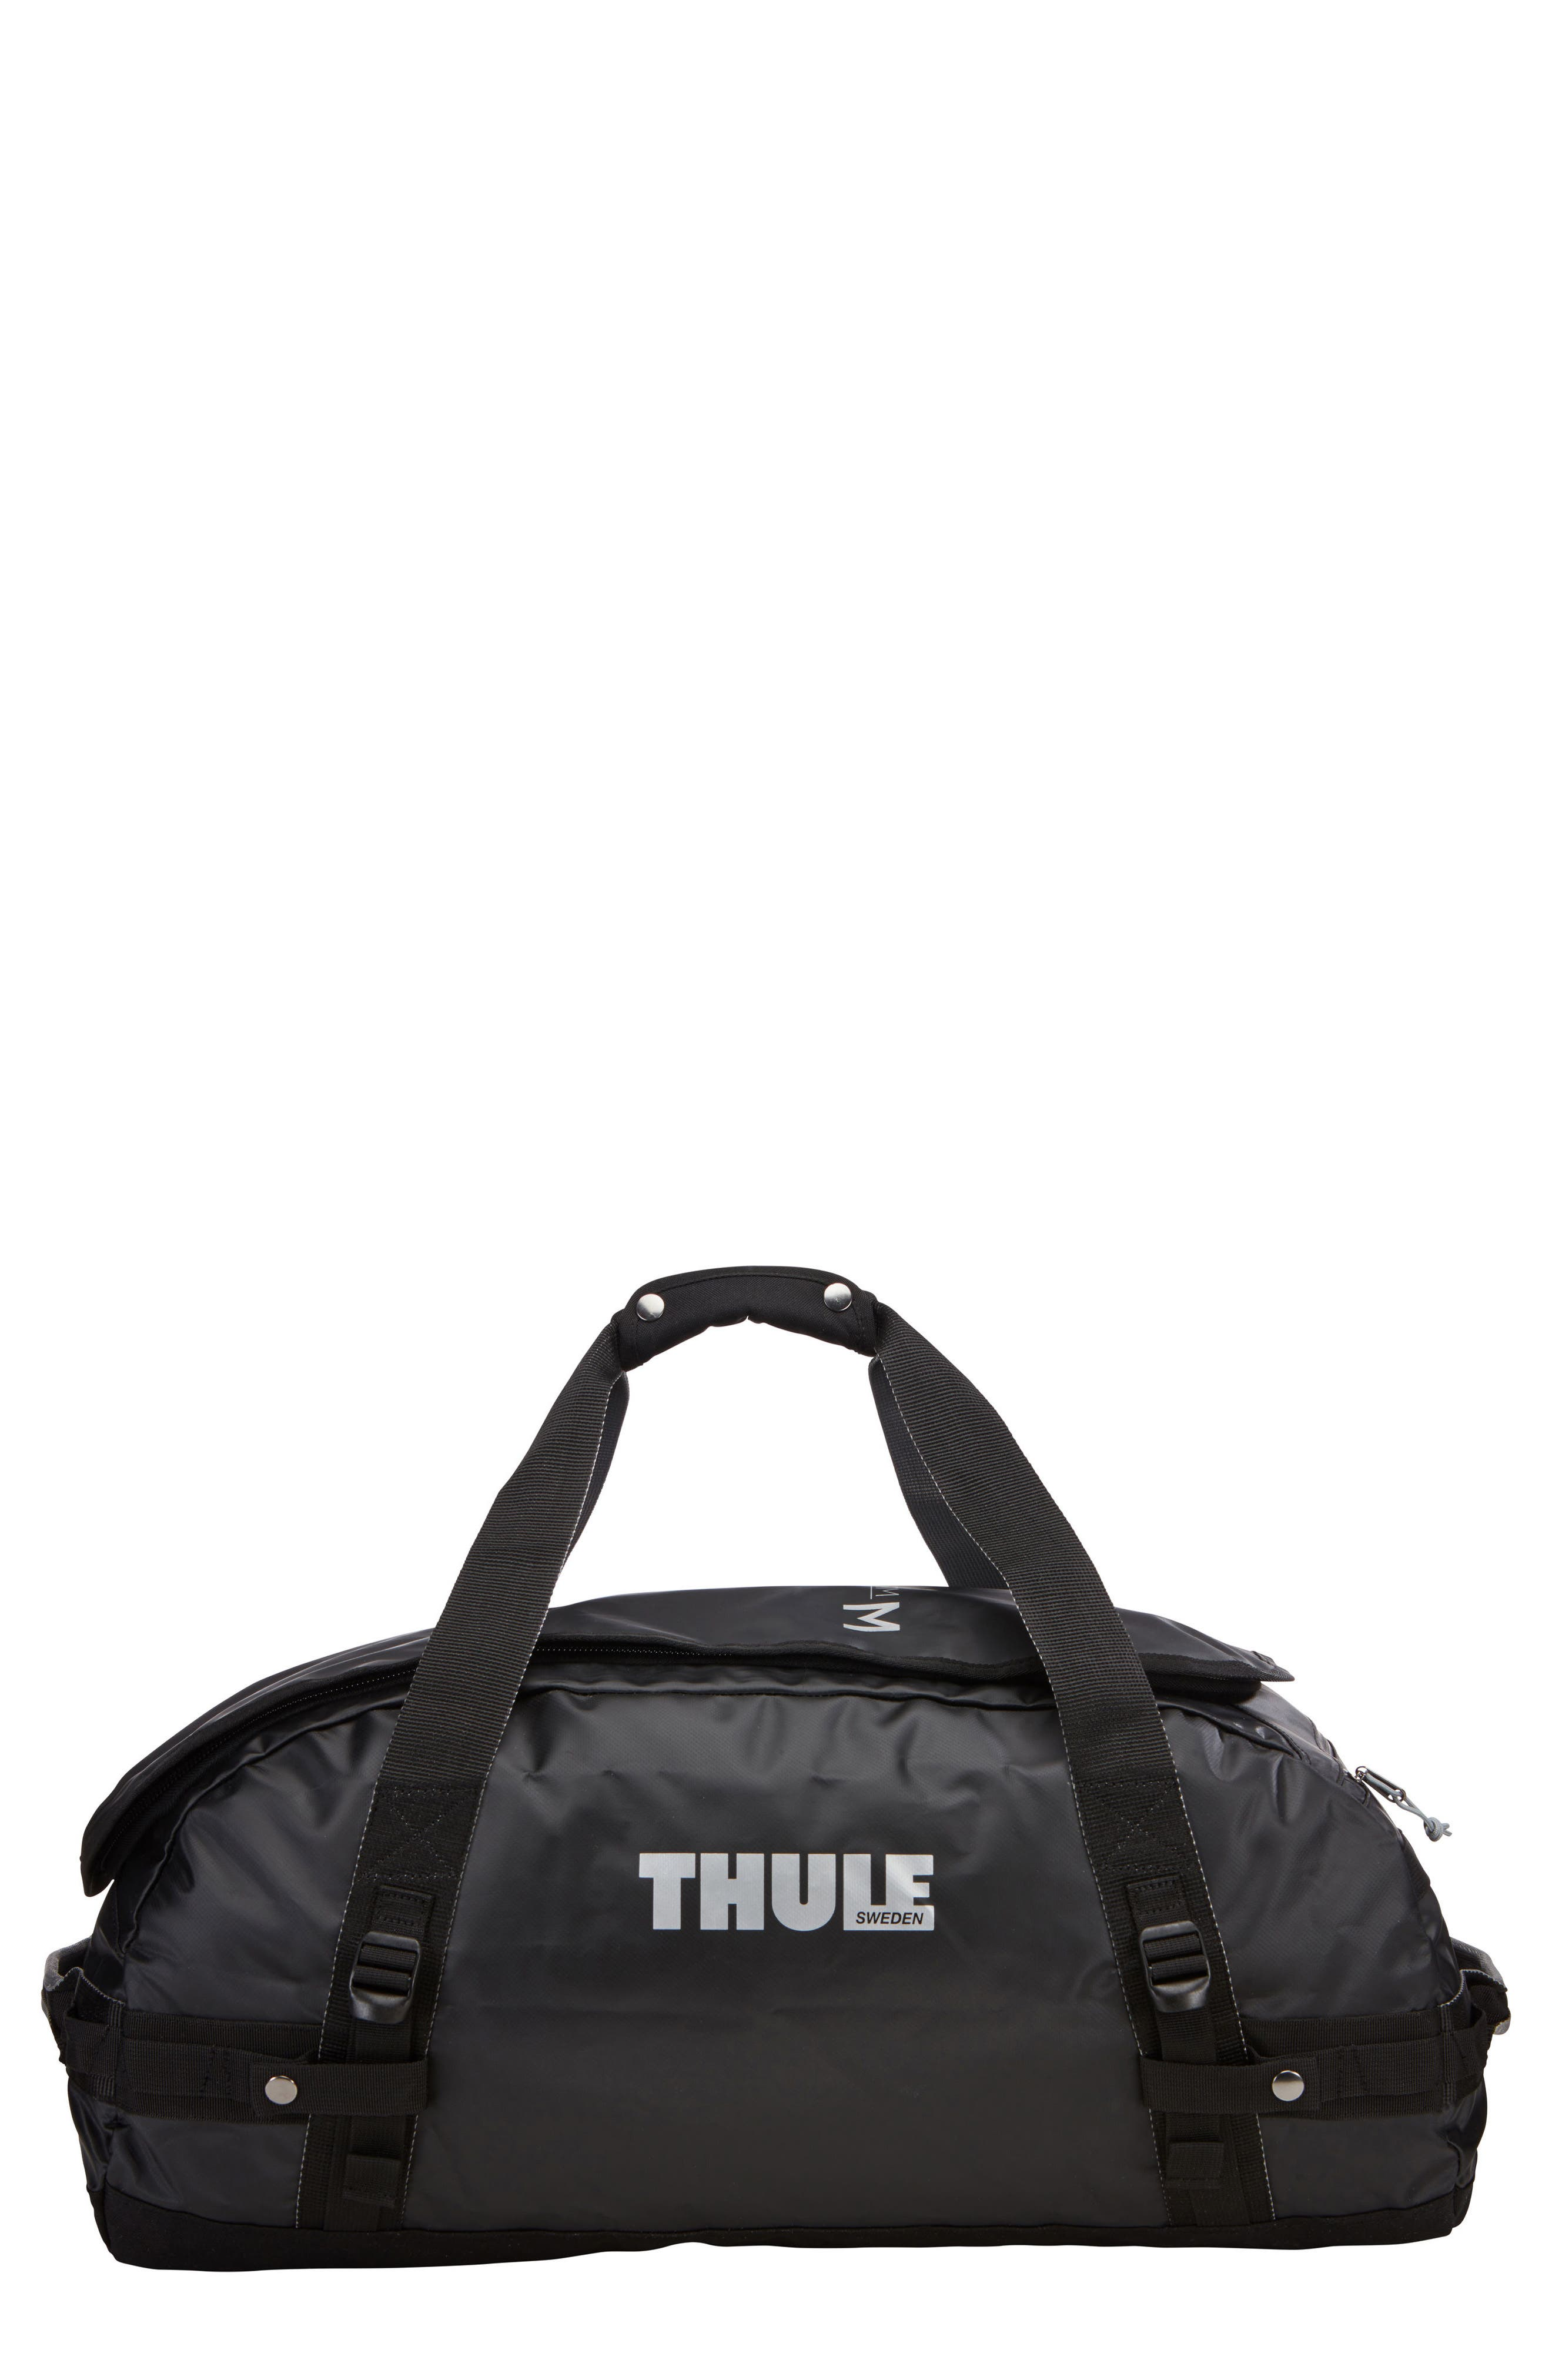 Chasm 70-Liter Convertible Duffel Bag,                         Main,                         color, BLACK